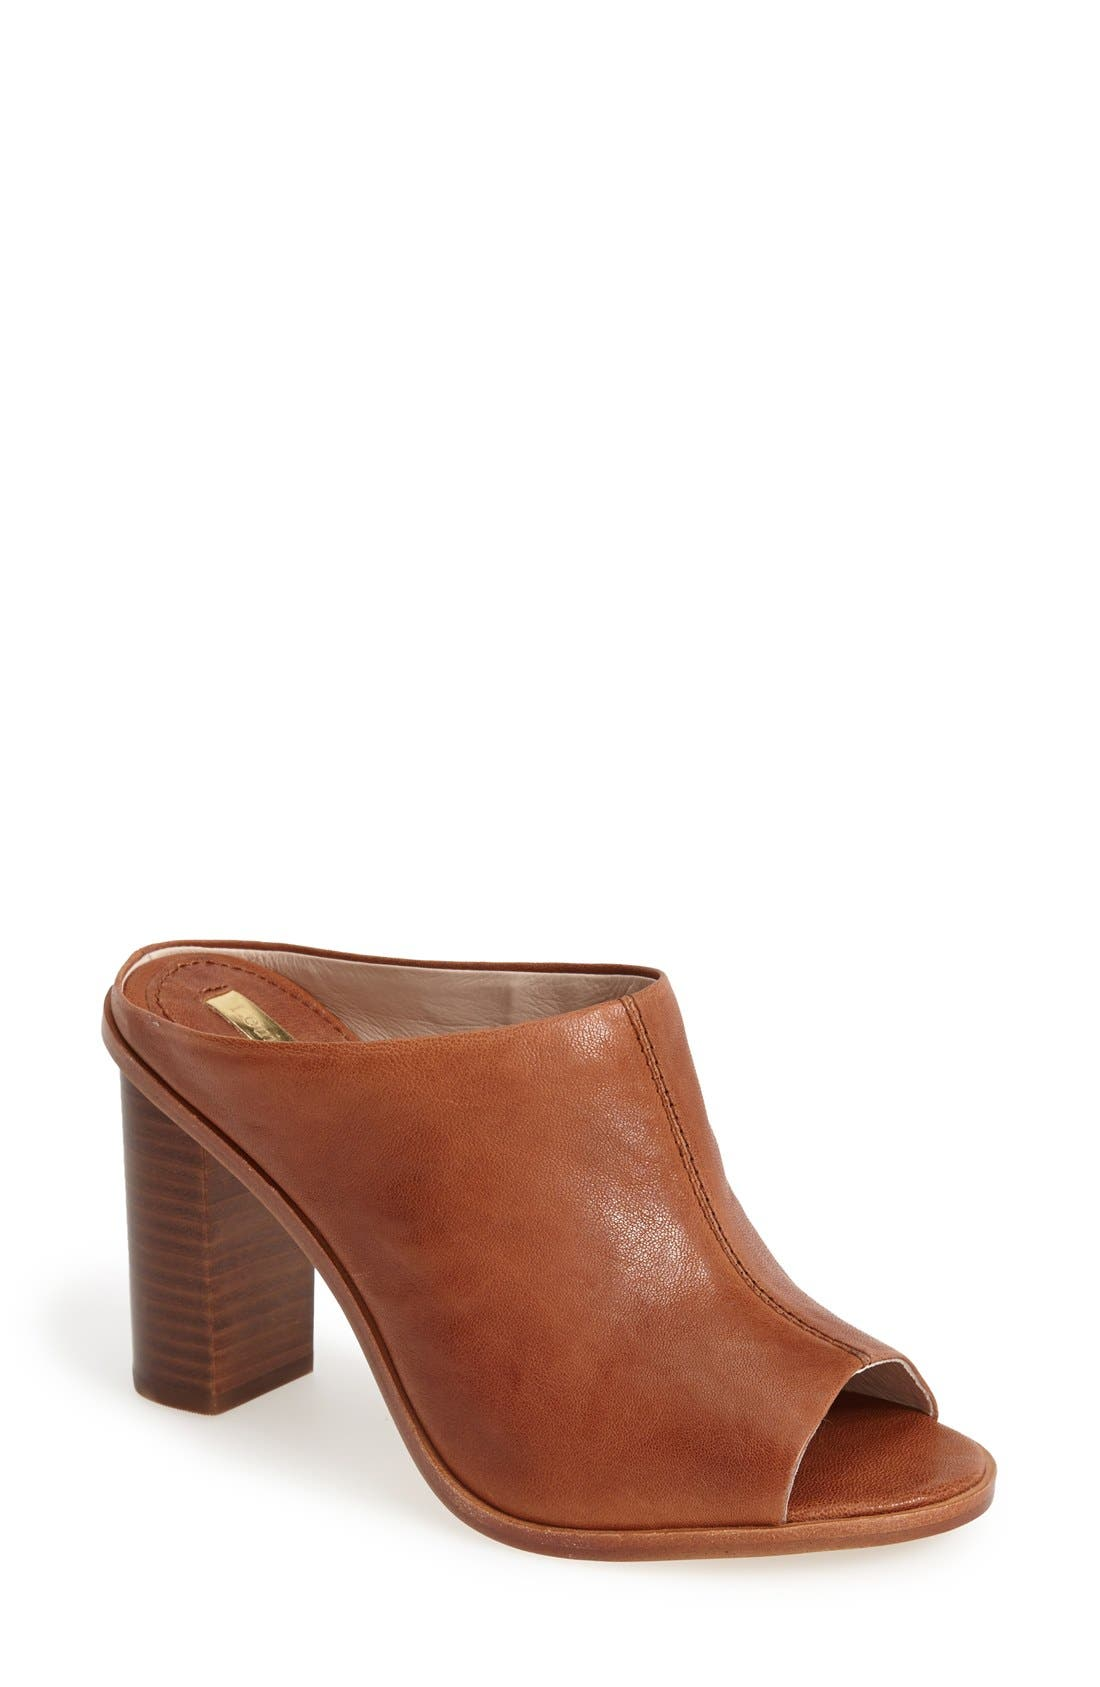 Main Image - Louise et Cie 'Lorena' Open Toe Mule (Women)